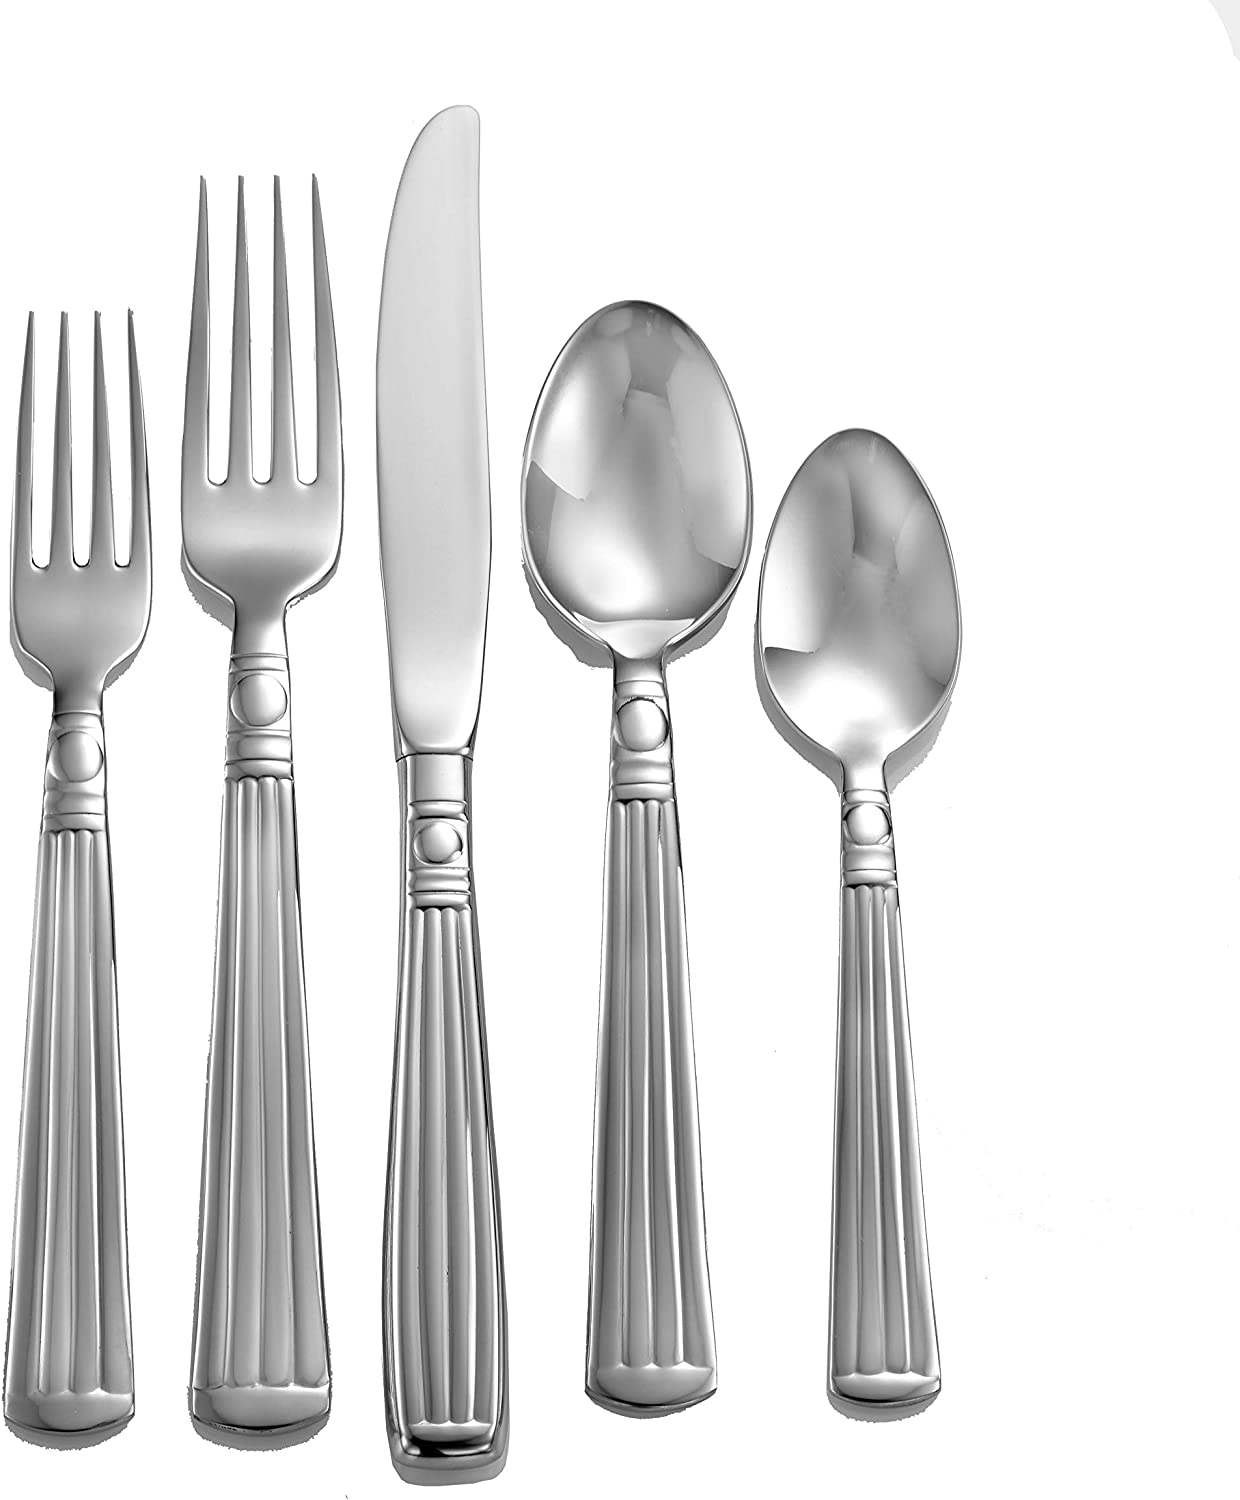 Liberty Tabletop Lincoln 45-piece 18 10 Set Incl 8 Flatware for SALENEW Max 49% OFF very popular